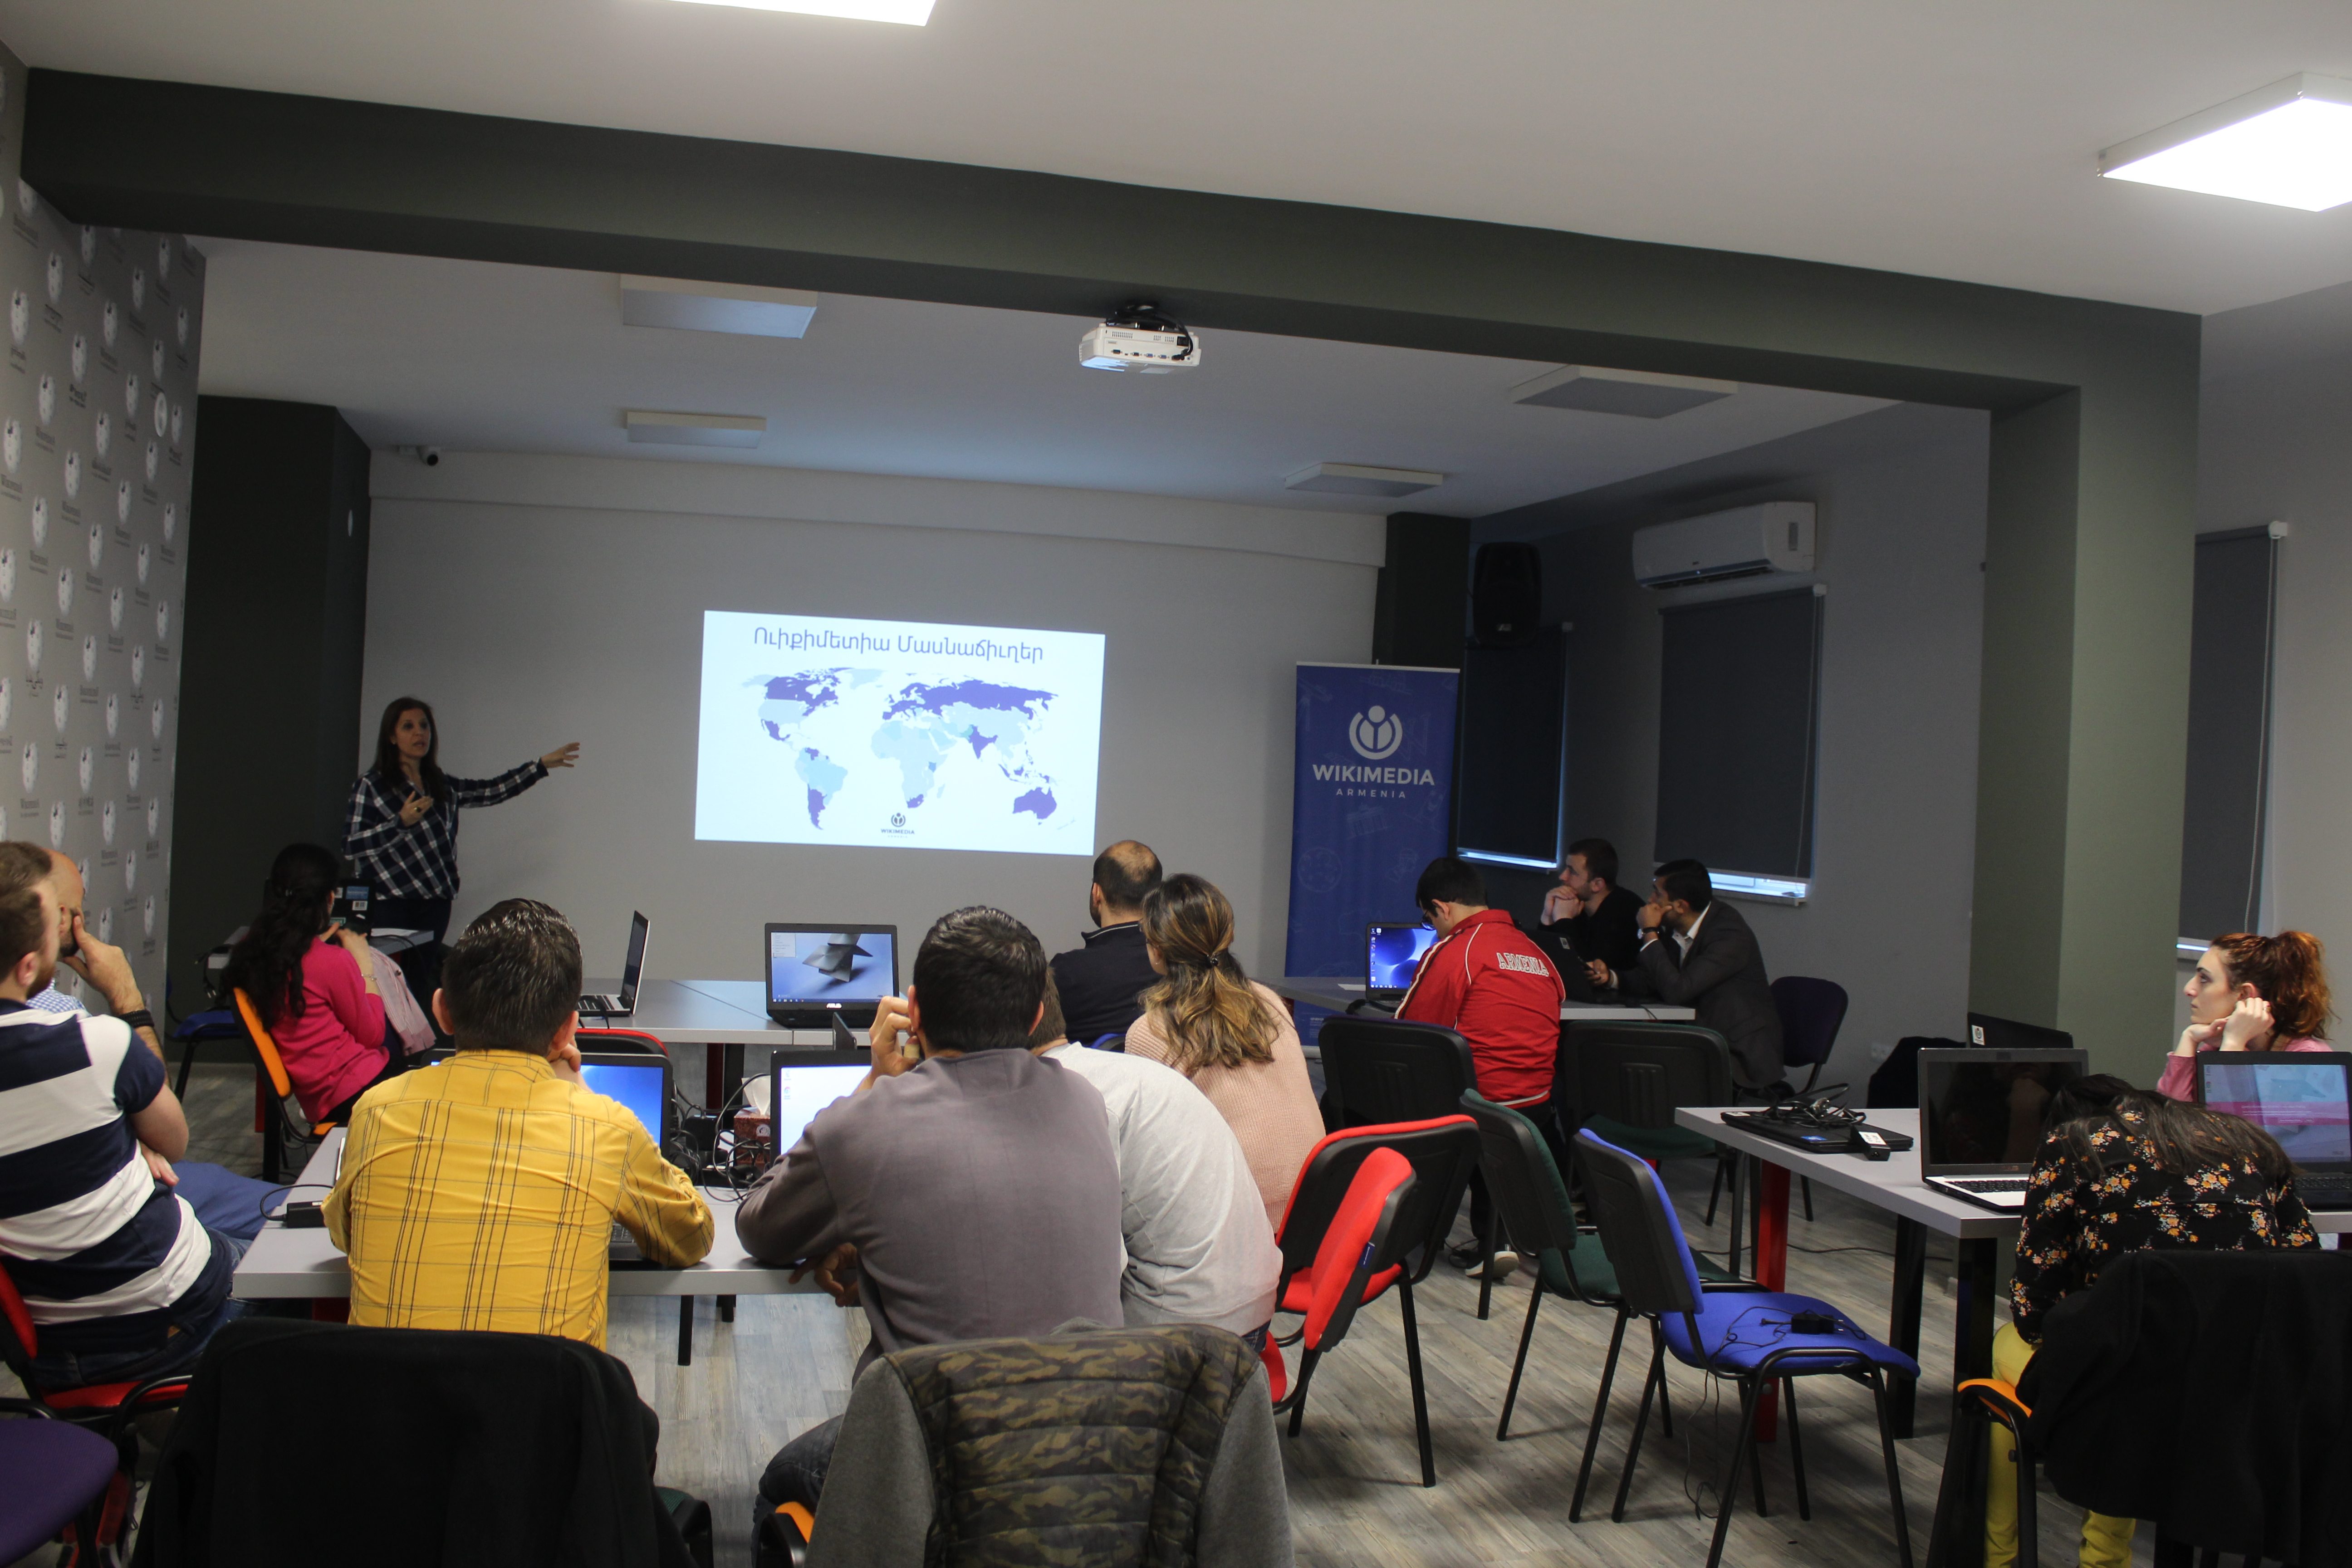 File:Workshop at Wikimedia Armenia office for Yerevan KASA